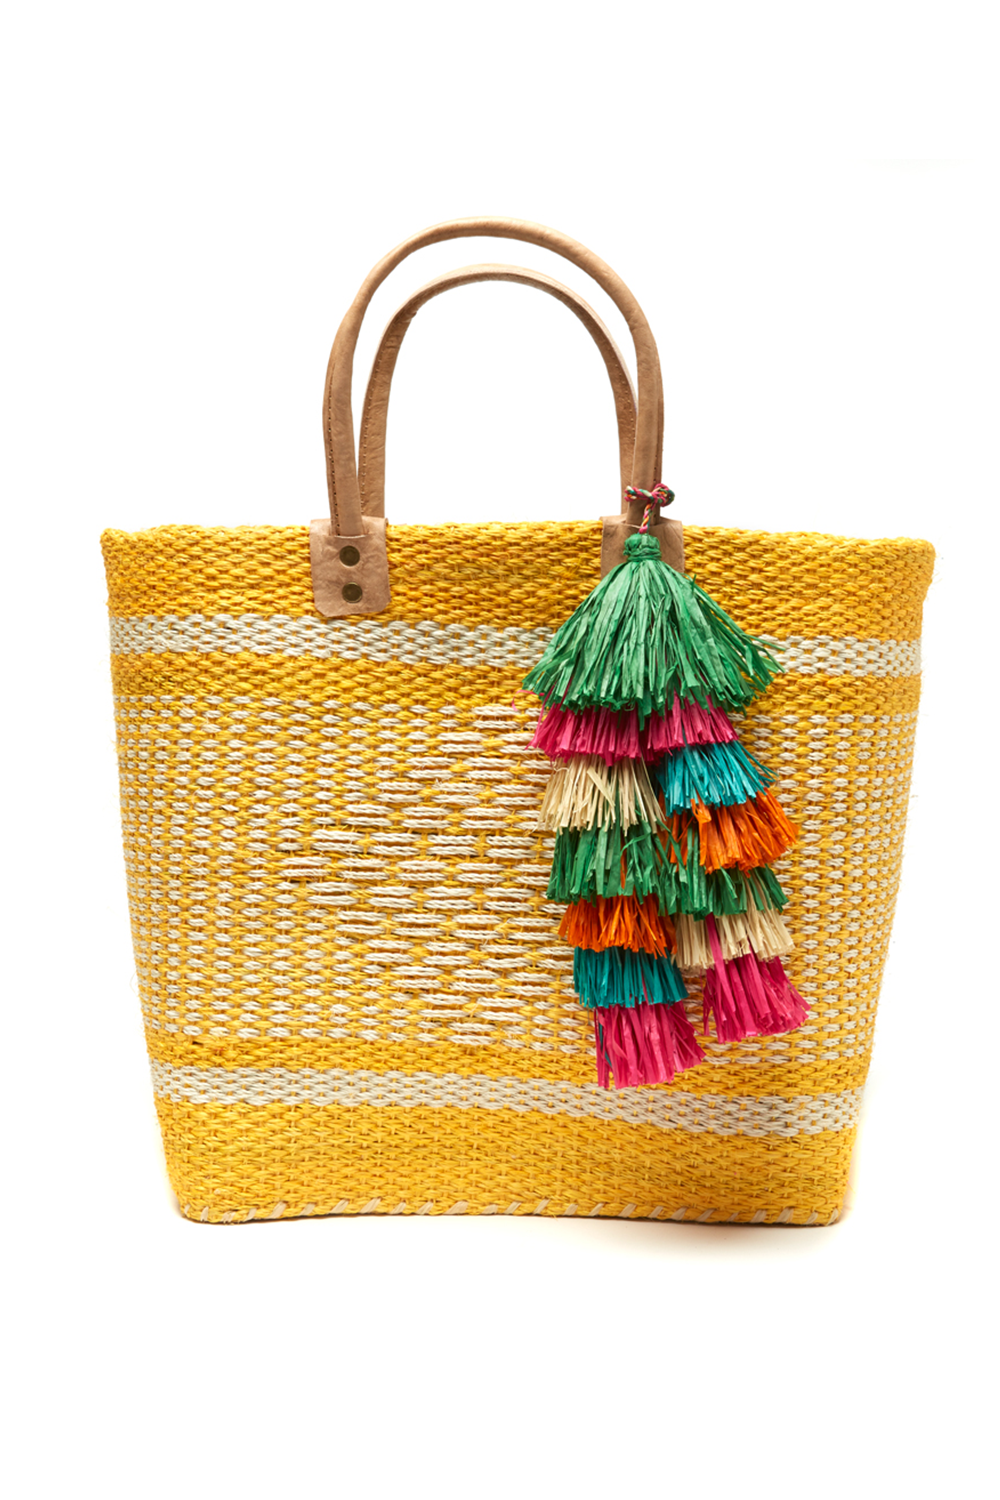 Ibiza Basket Tote in Sunflower